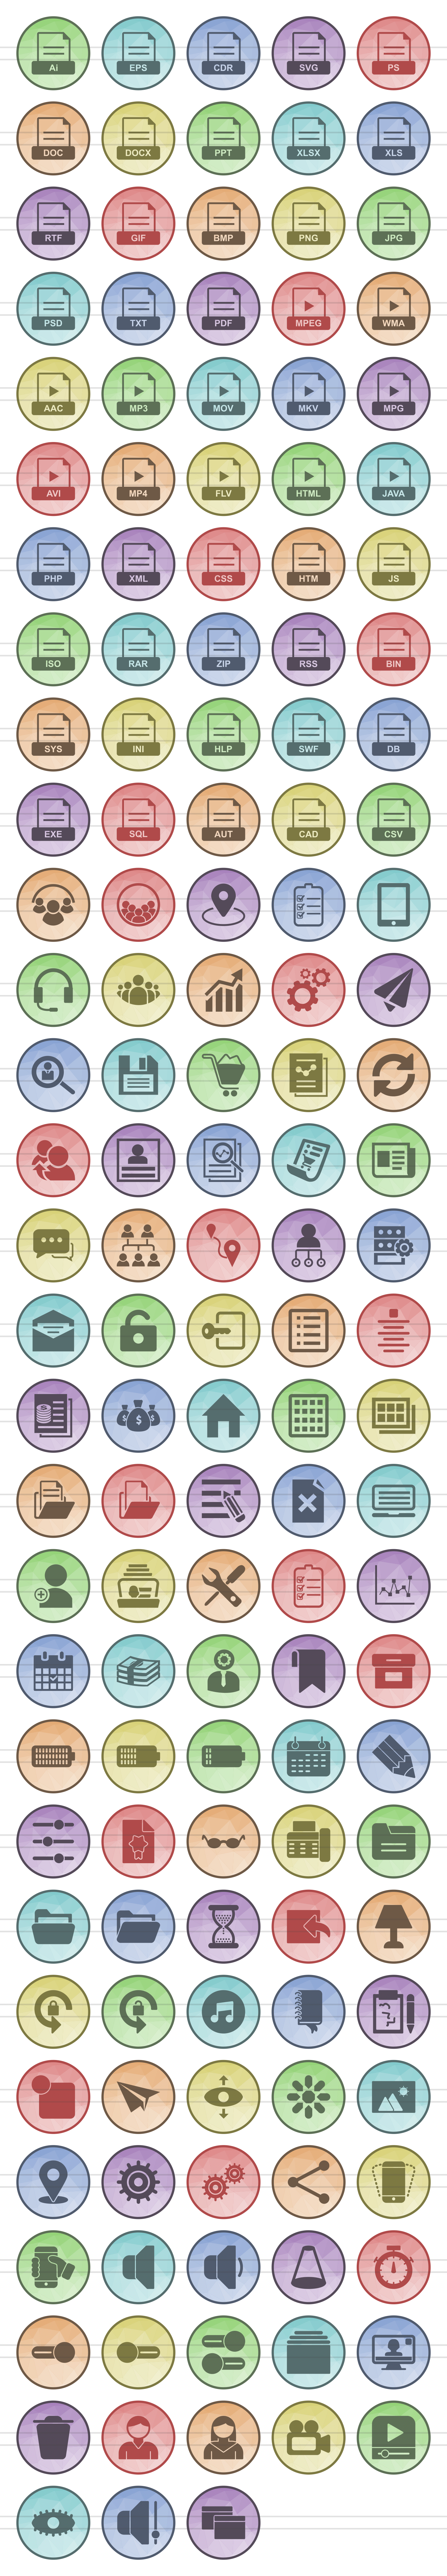 148 Files & Folders Filled Low Poly Icons example image 2